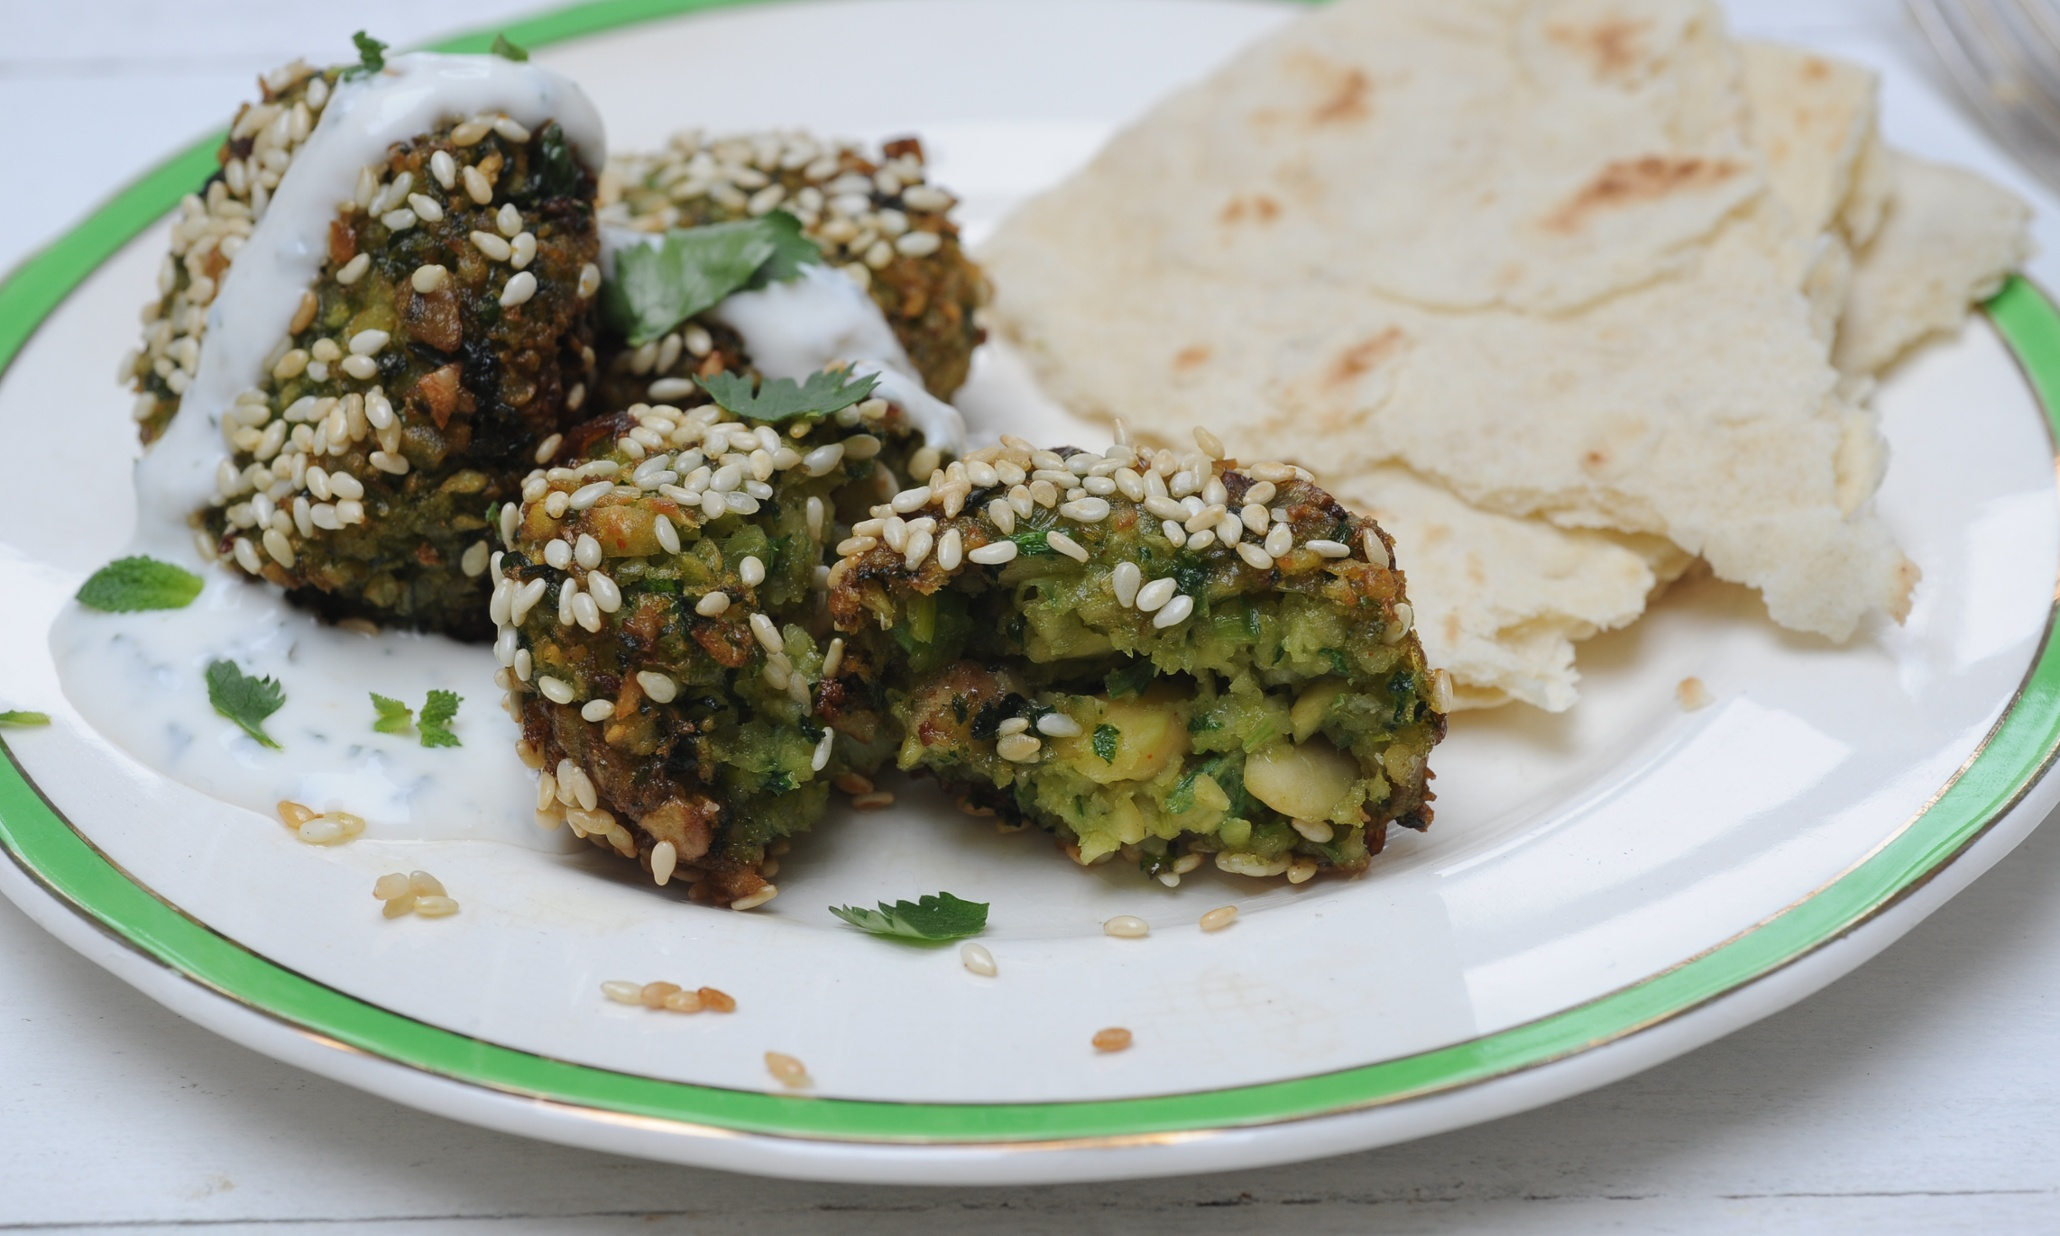 The world's best falafel recipe comes from Egypt